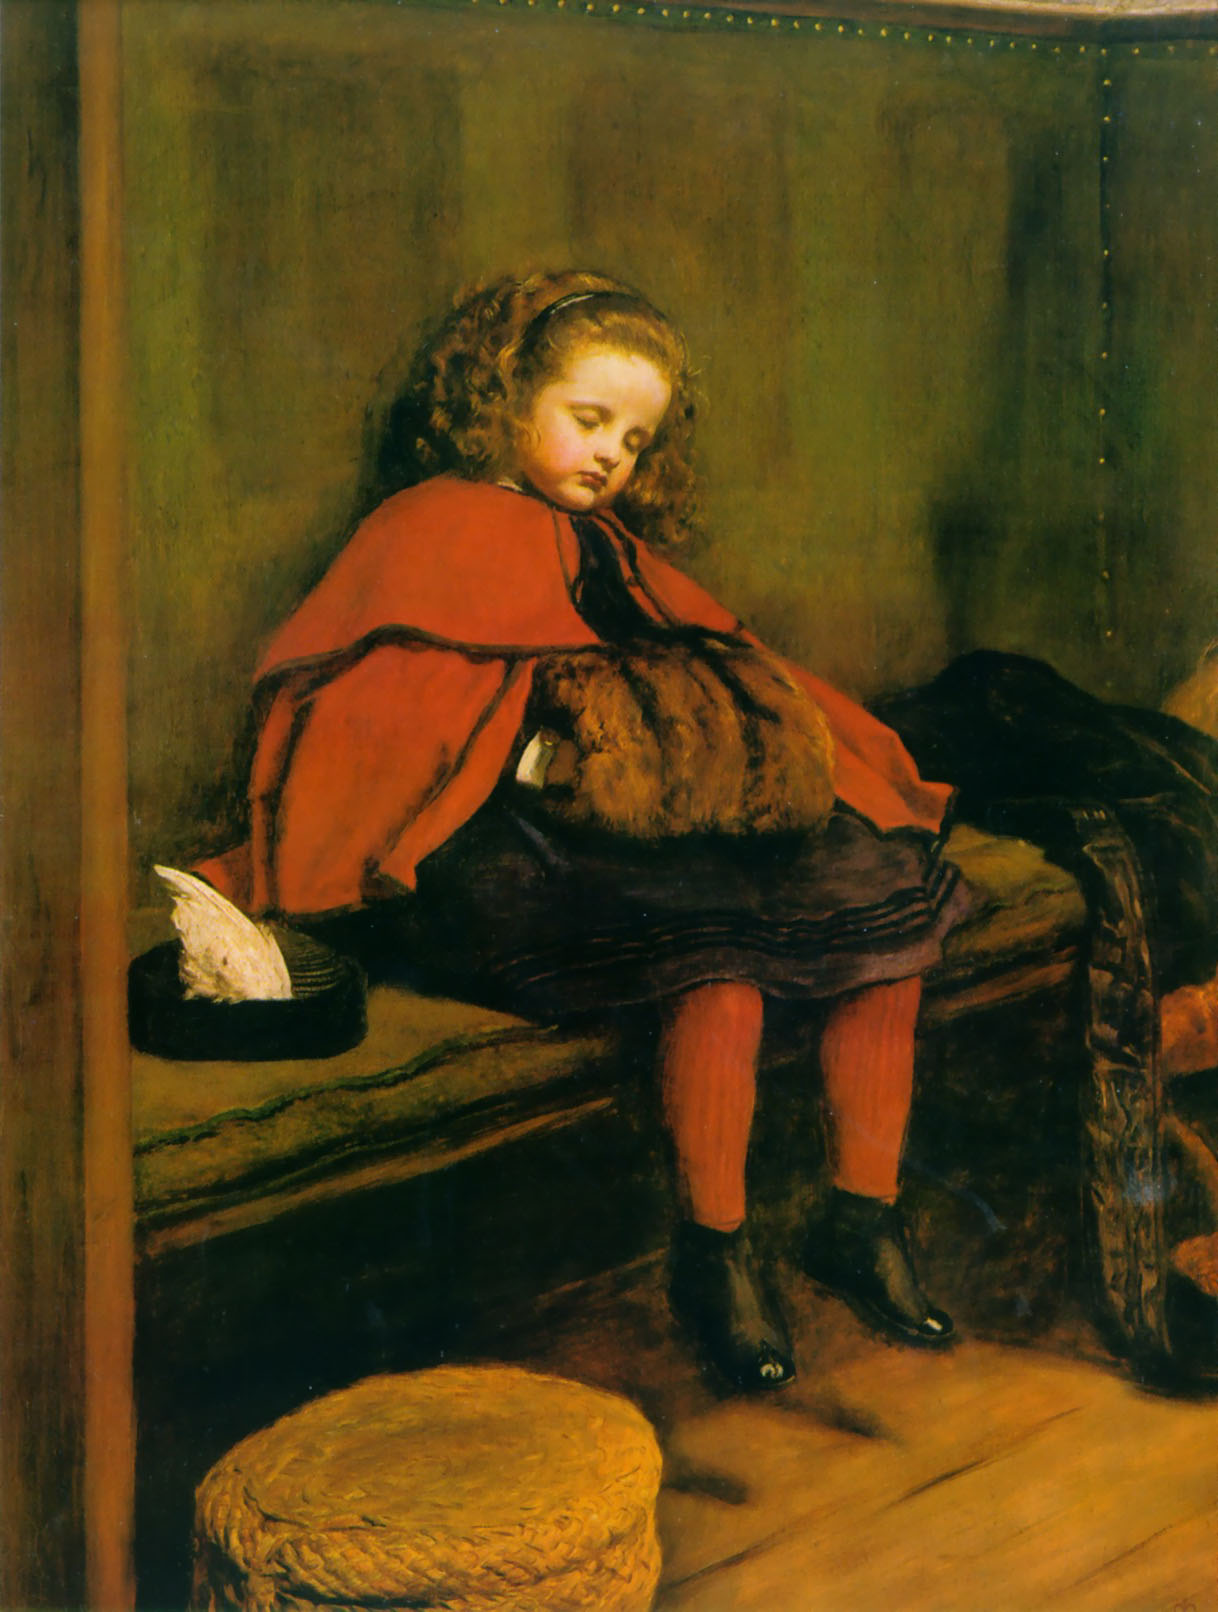 http://uploads3.wikipaintings.org/images/john-everett-millais/my-second-sermon-1864.jpg